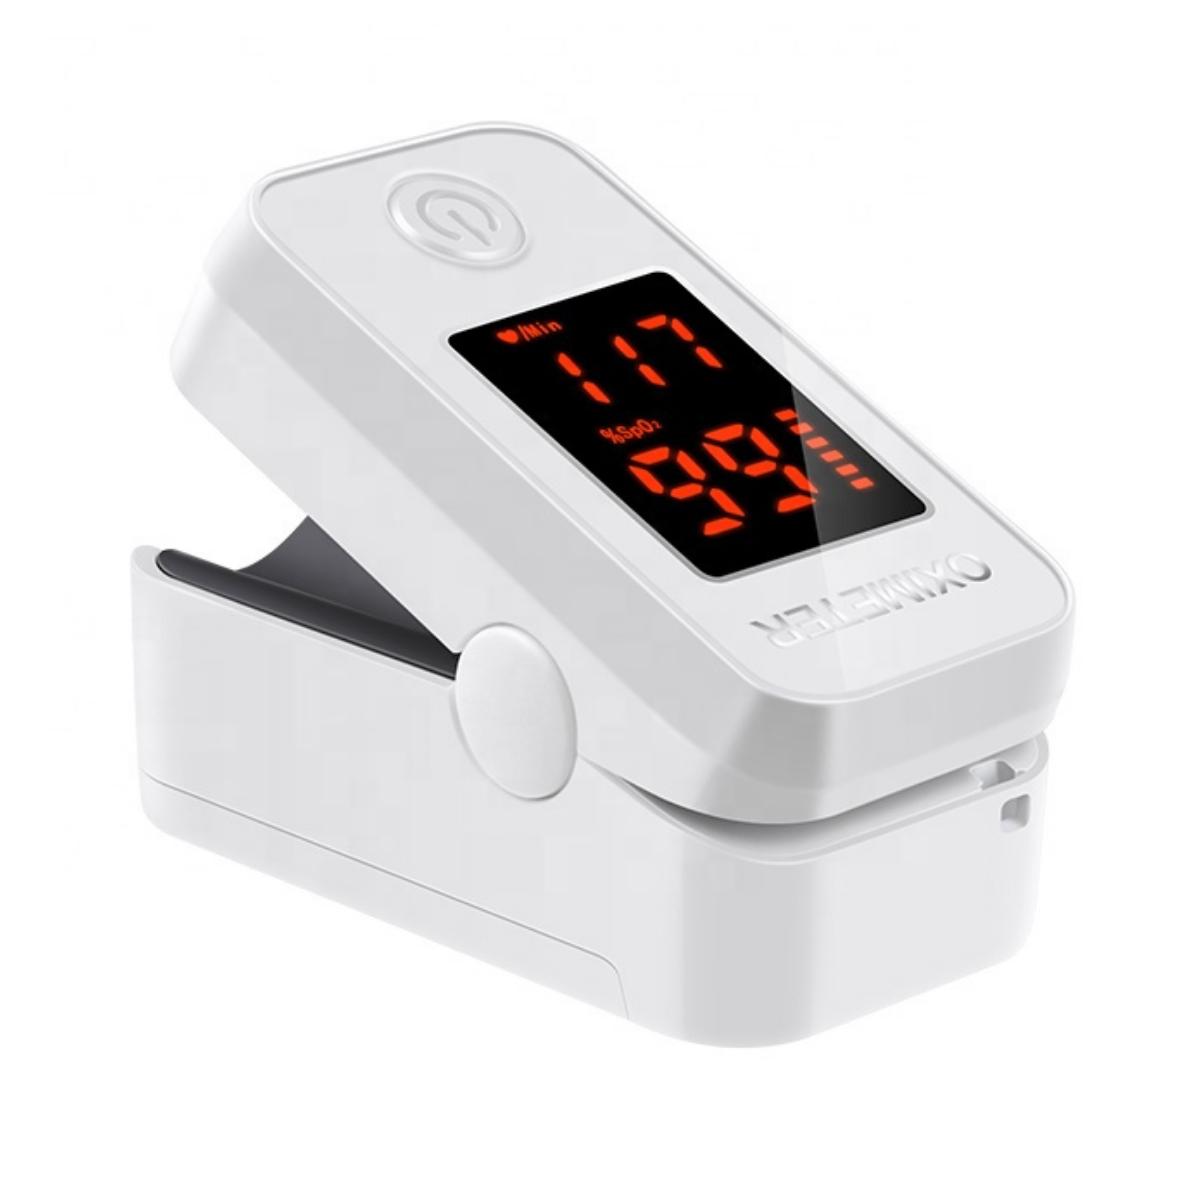 How to use the oximeter